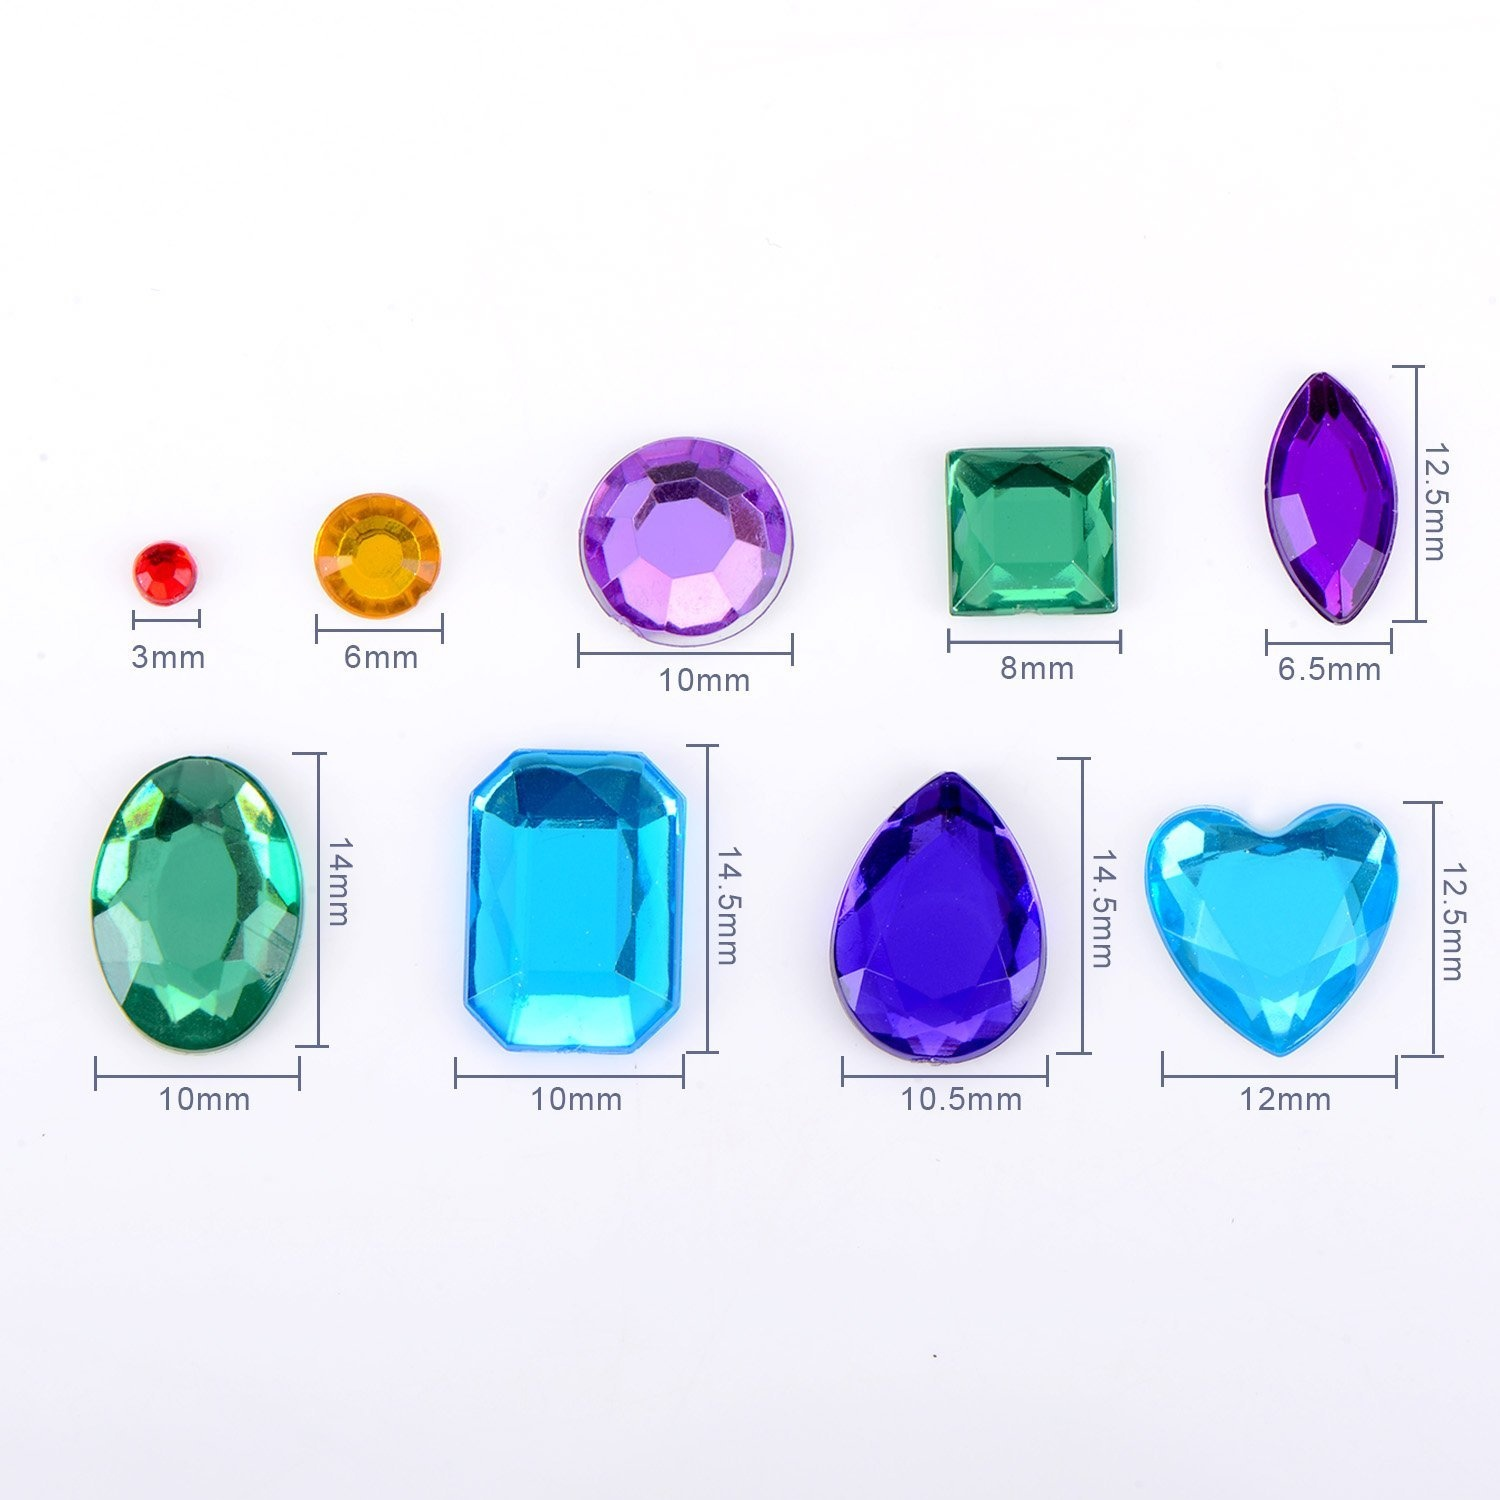 Outus Self-adhesive Rhinestone Sticker Bling Craft Jewels Crystal Gem Stickers 5 Sheets Multicolor 2 Assorted Size